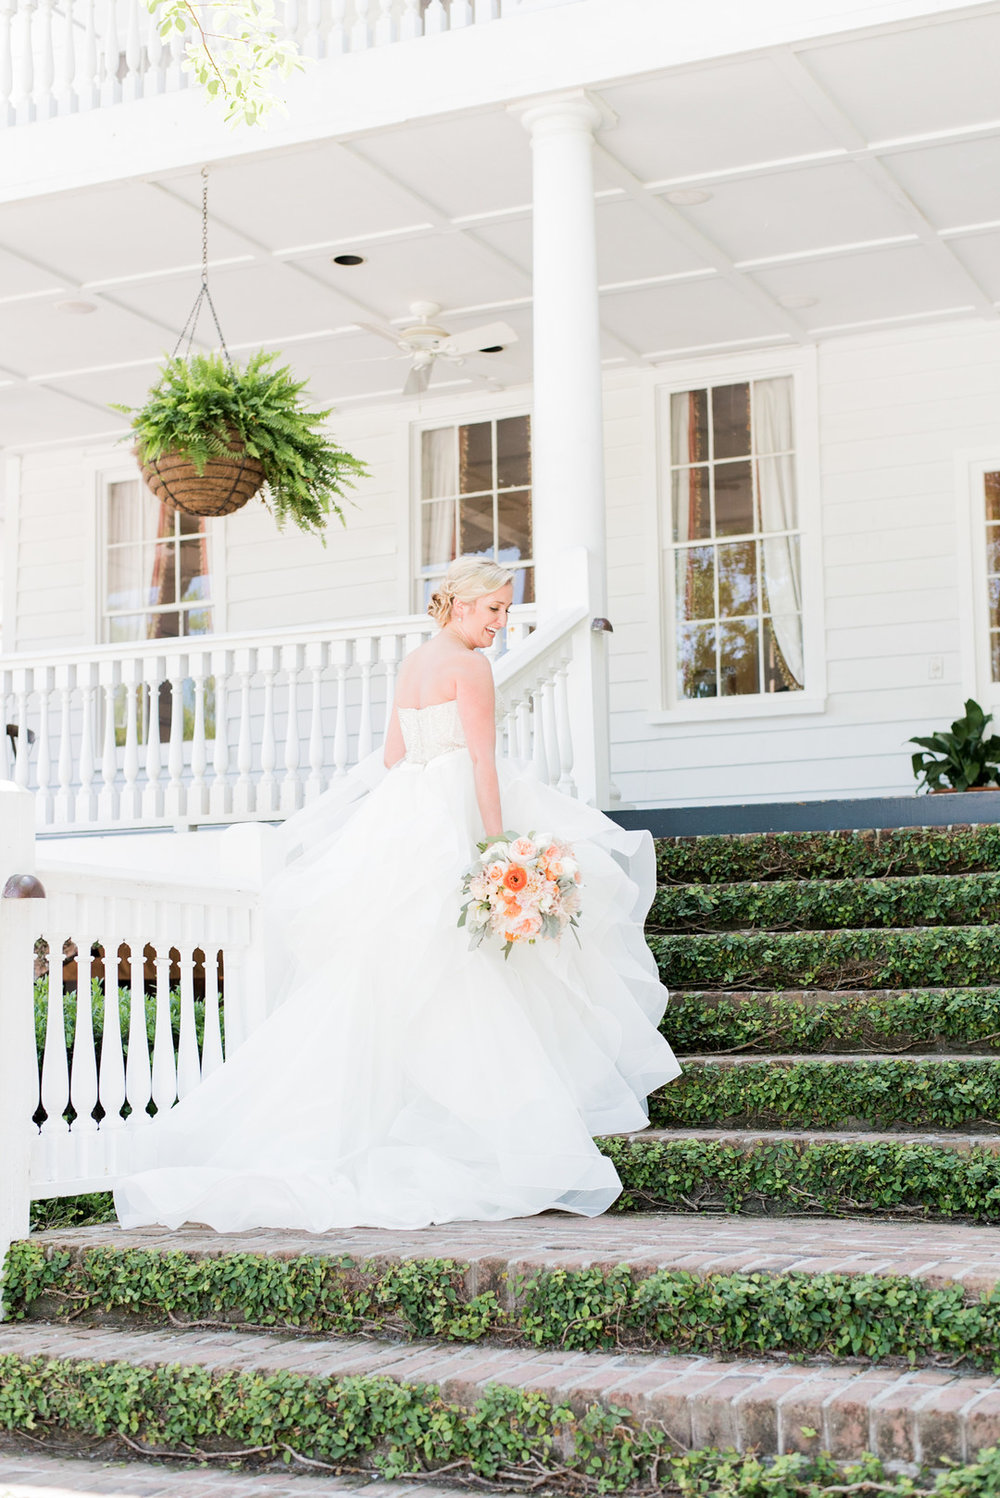 old-wide-awake-plantation-wedding-23.jpg